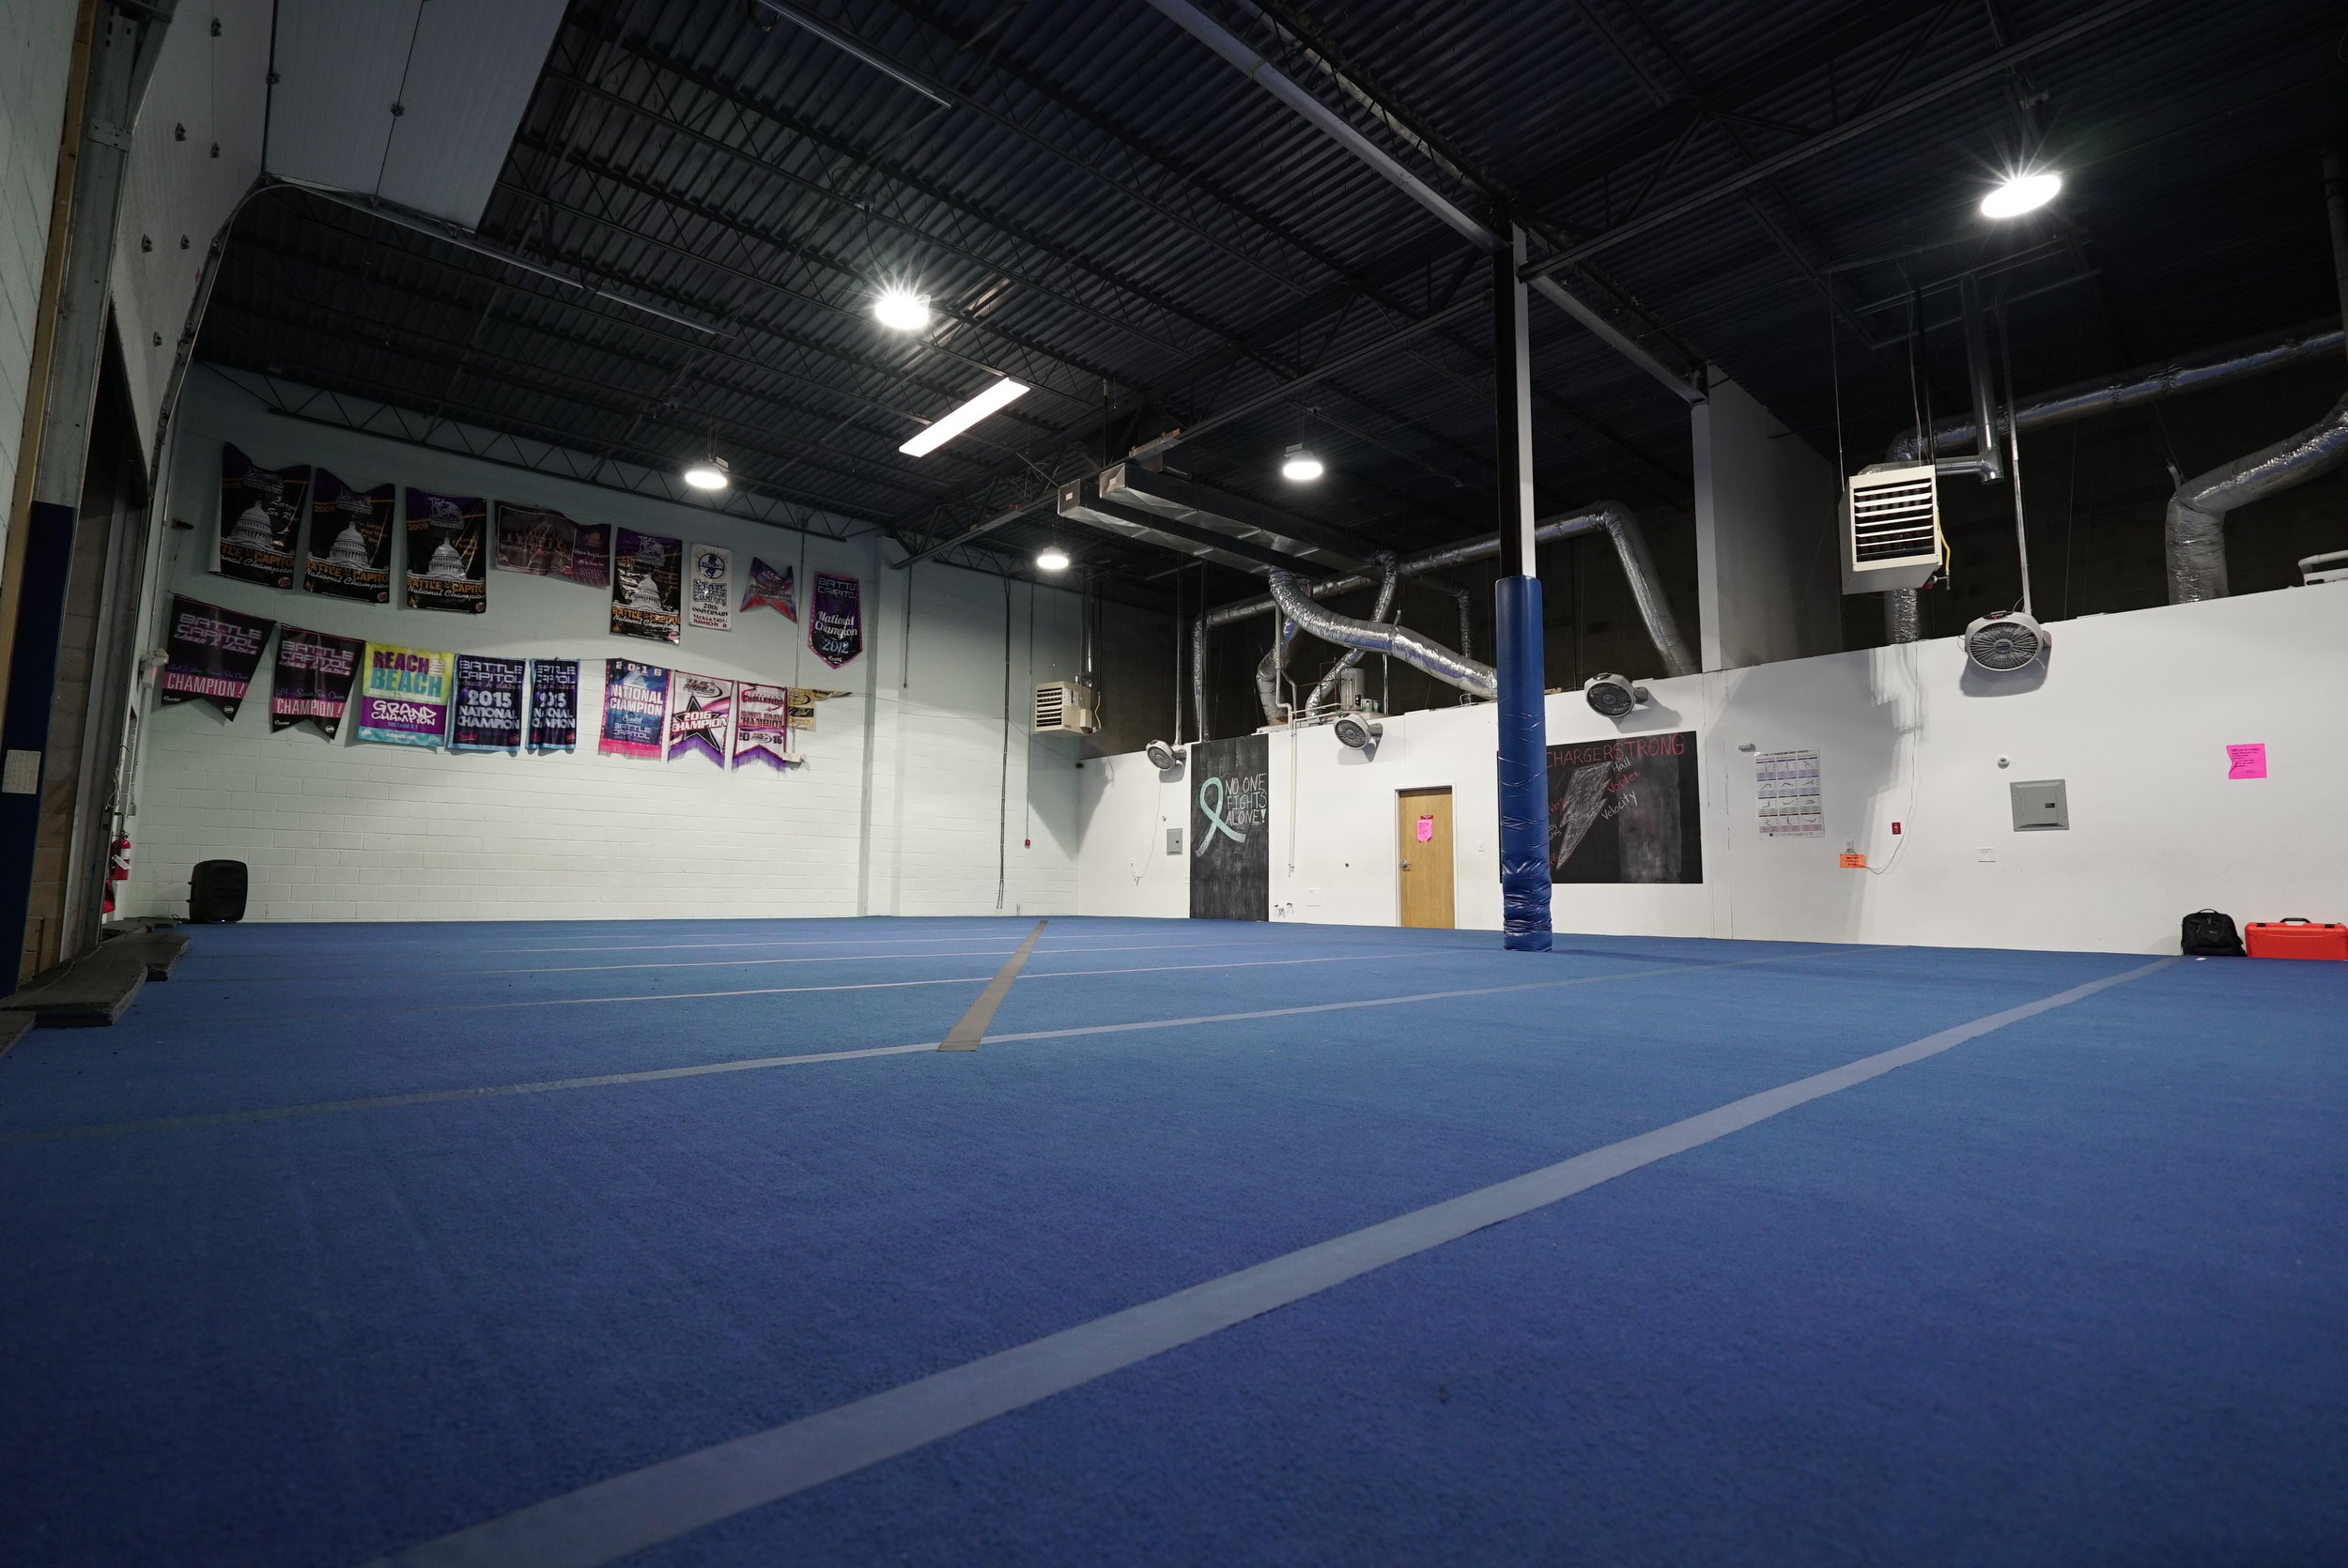 OUR HOME - IAT3C is the newest sports performance and training facility in located in Blackwood New Jersey! It was designed from the ground up for safety, fun and the purpose of teaching students and athletes the latest techniques in acrobatics/tumbling. The center comes equipped with a parent waiting area, full spring floor, Tumble Track and mats for our athletes to learn the highest level of training techniques in the safest environment possible.